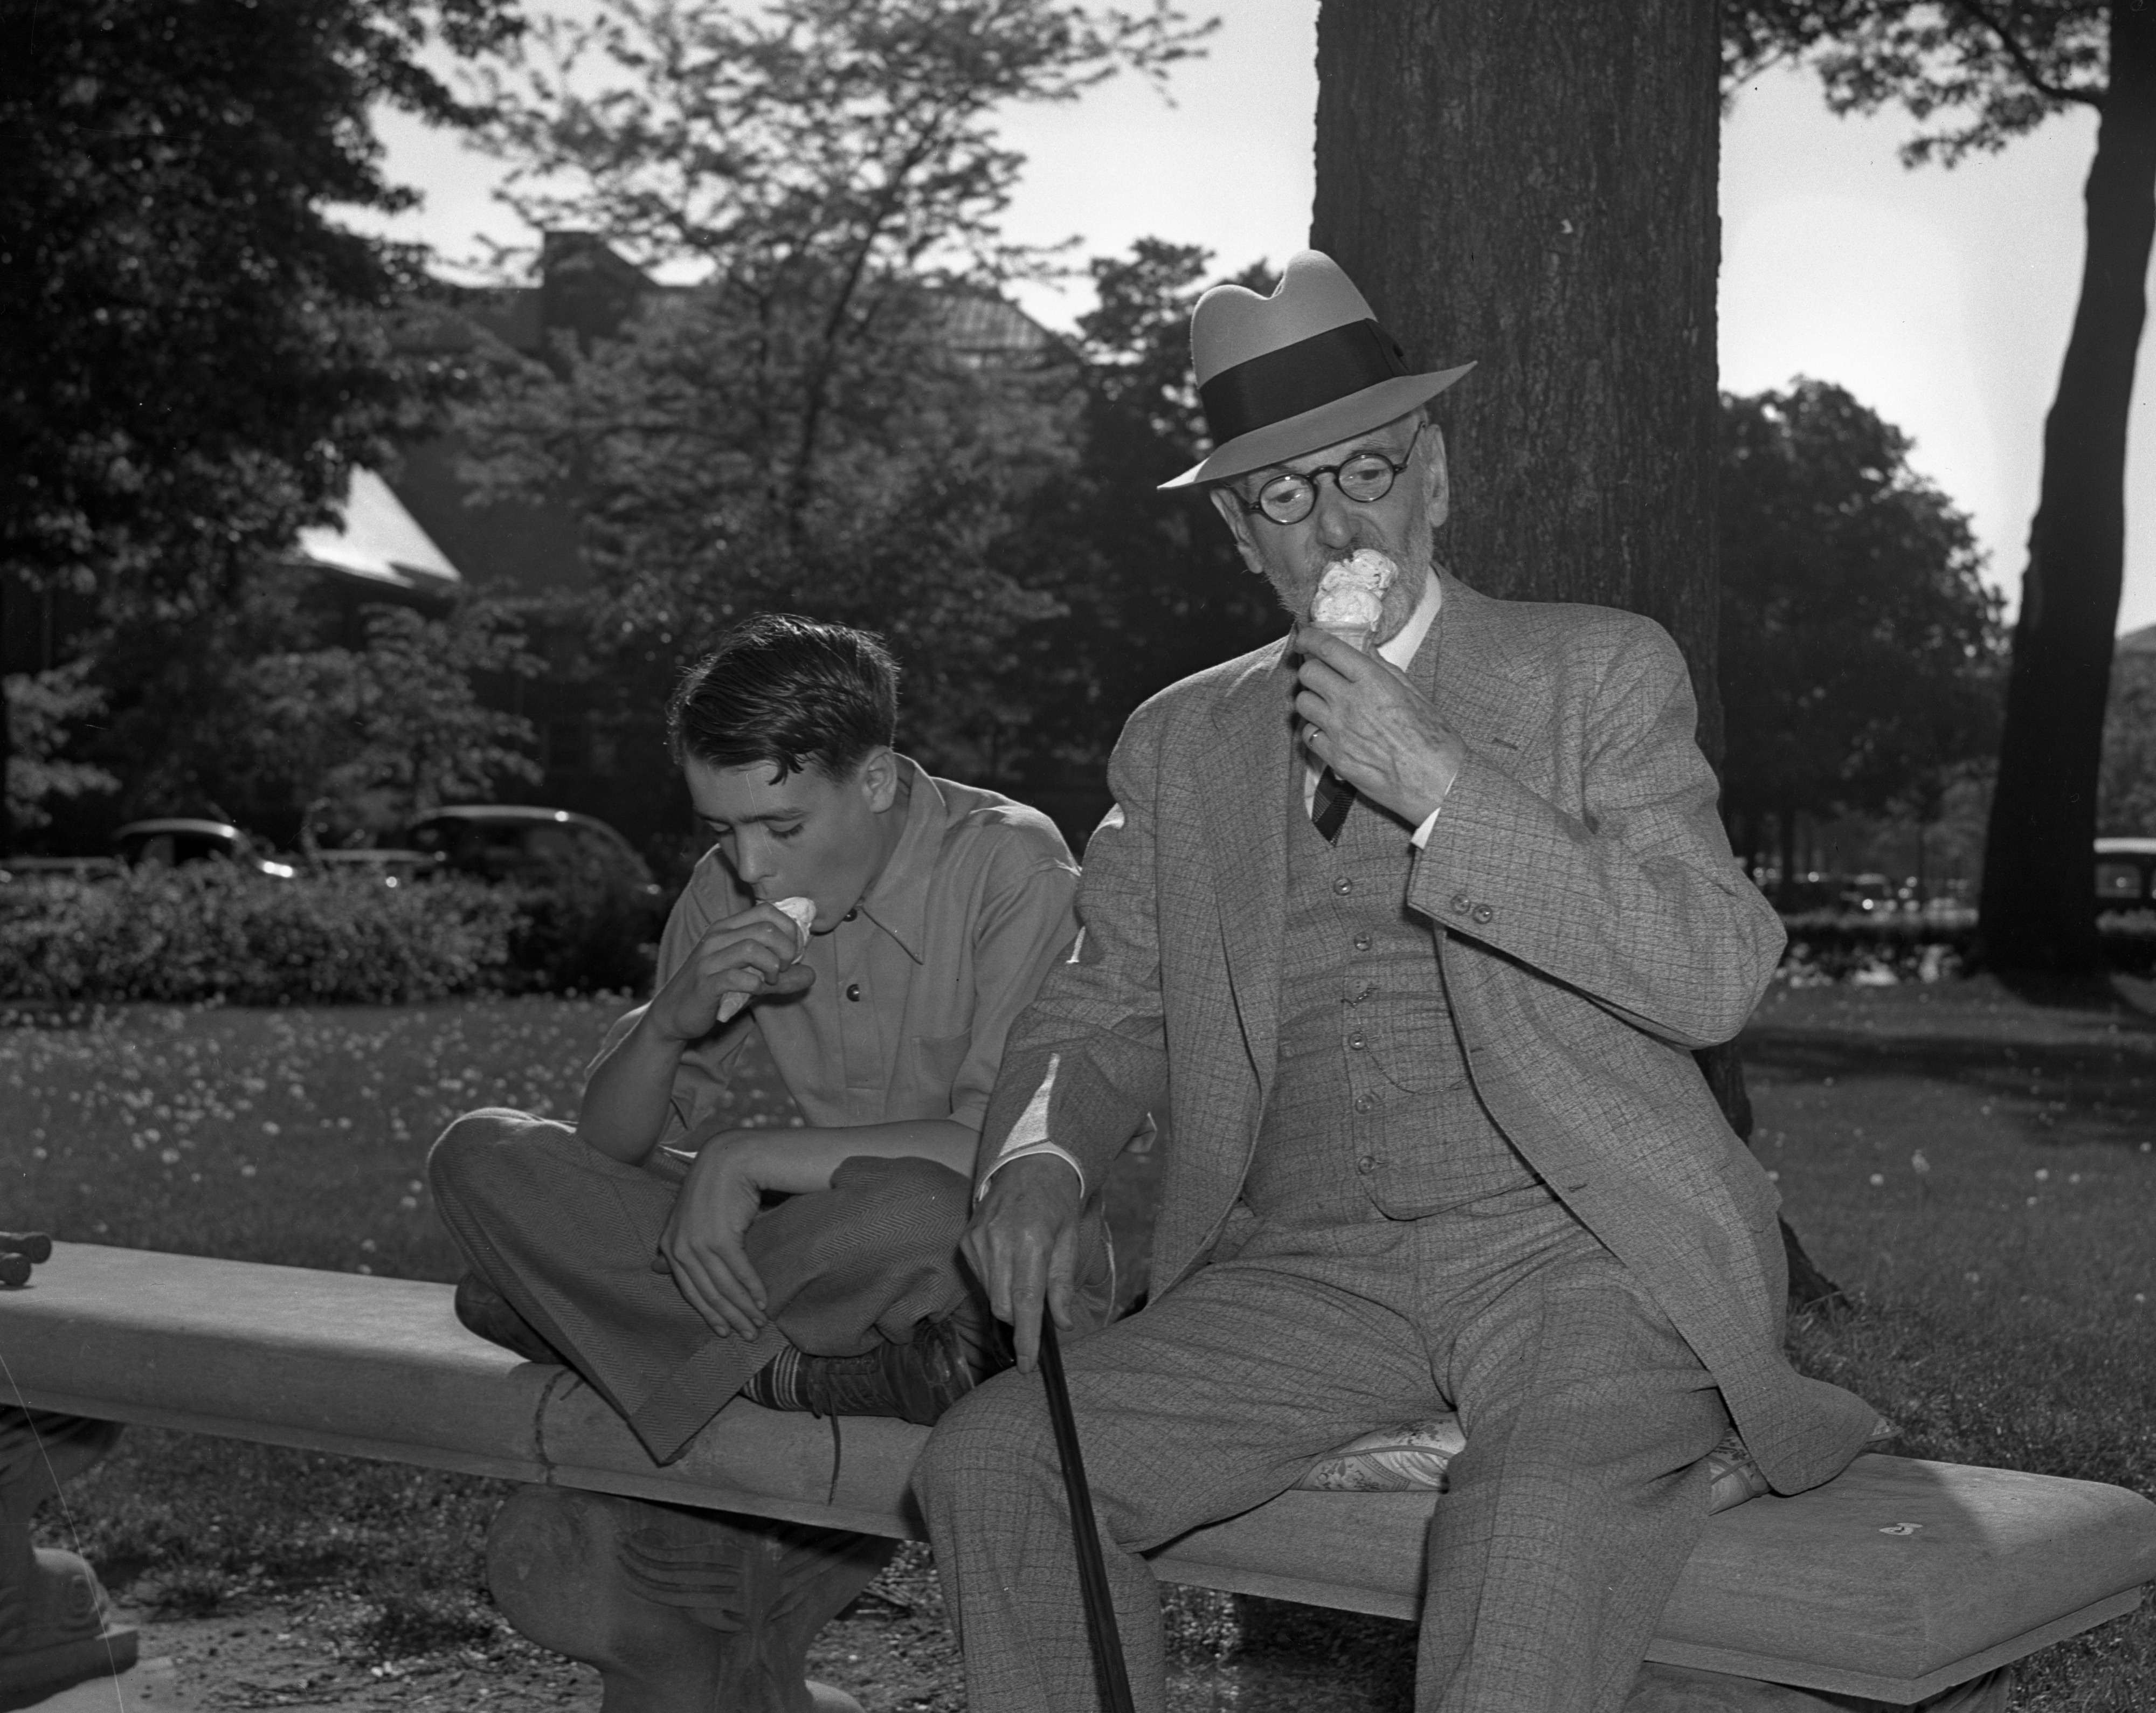 Bobby and the Old Professor with ice cream cones, June 1939 image